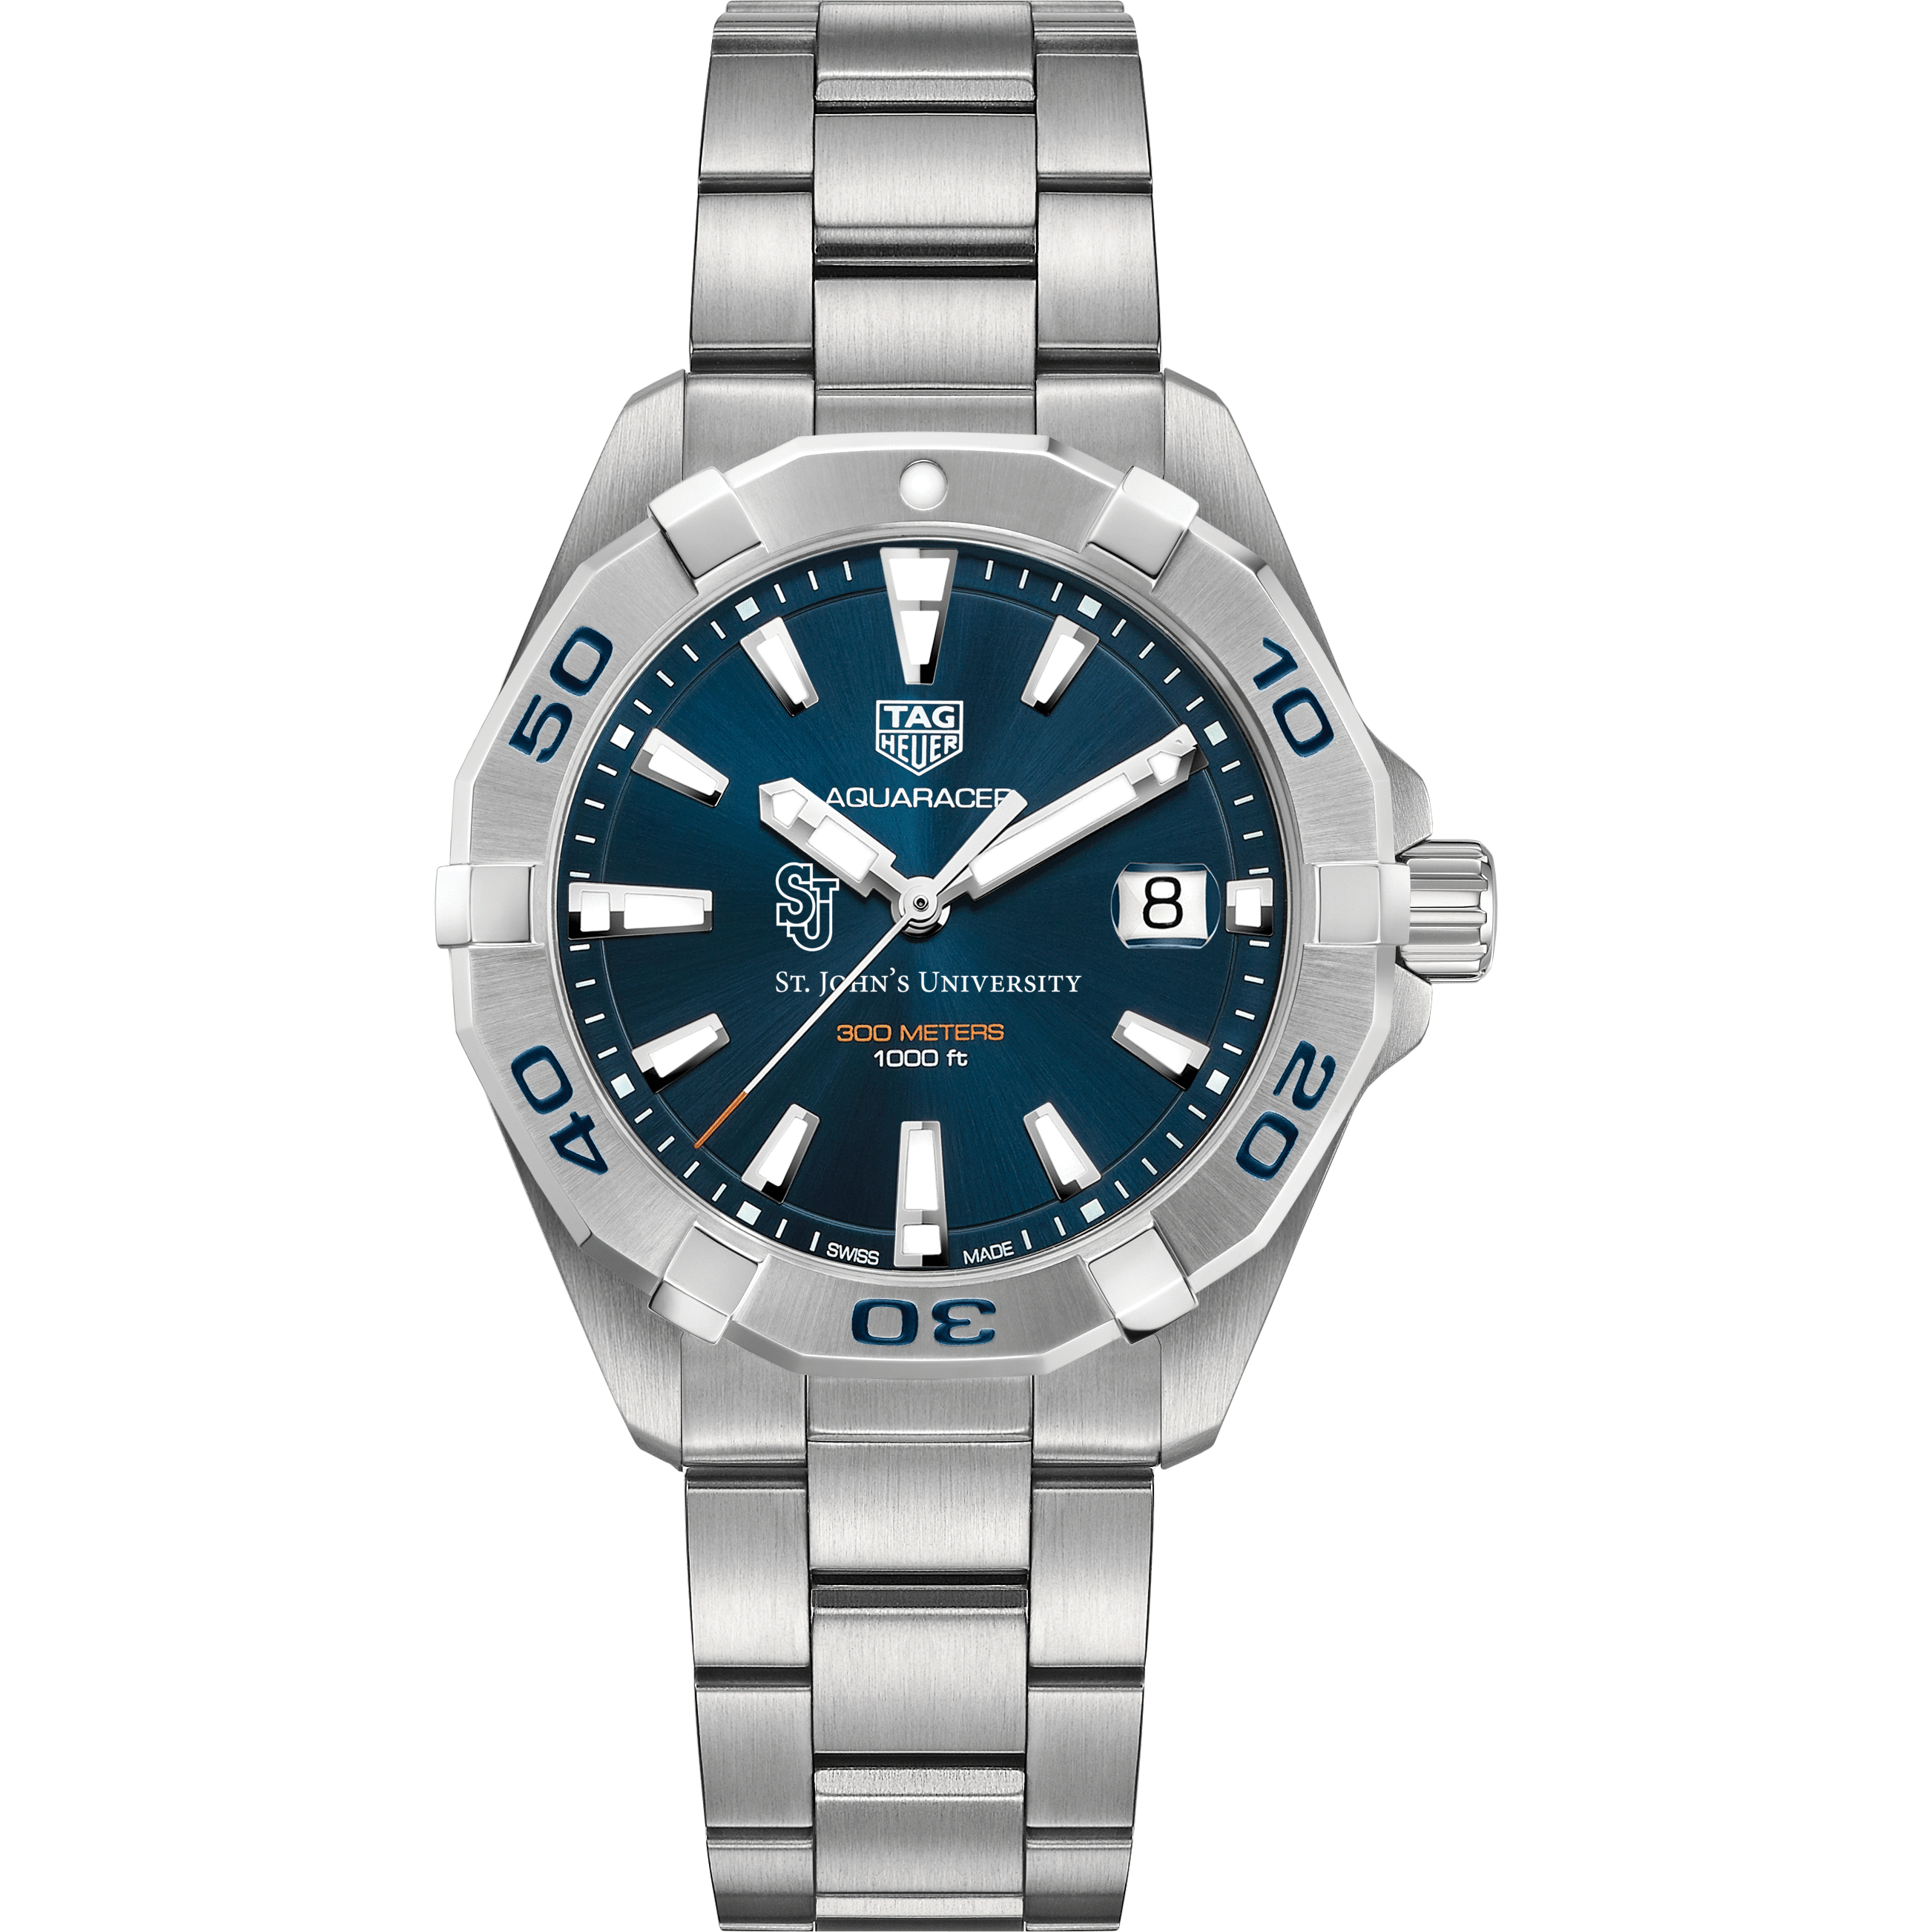 St. John's Men's TAG Heuer Steel Aquaracer with Blue Dial - Image 2